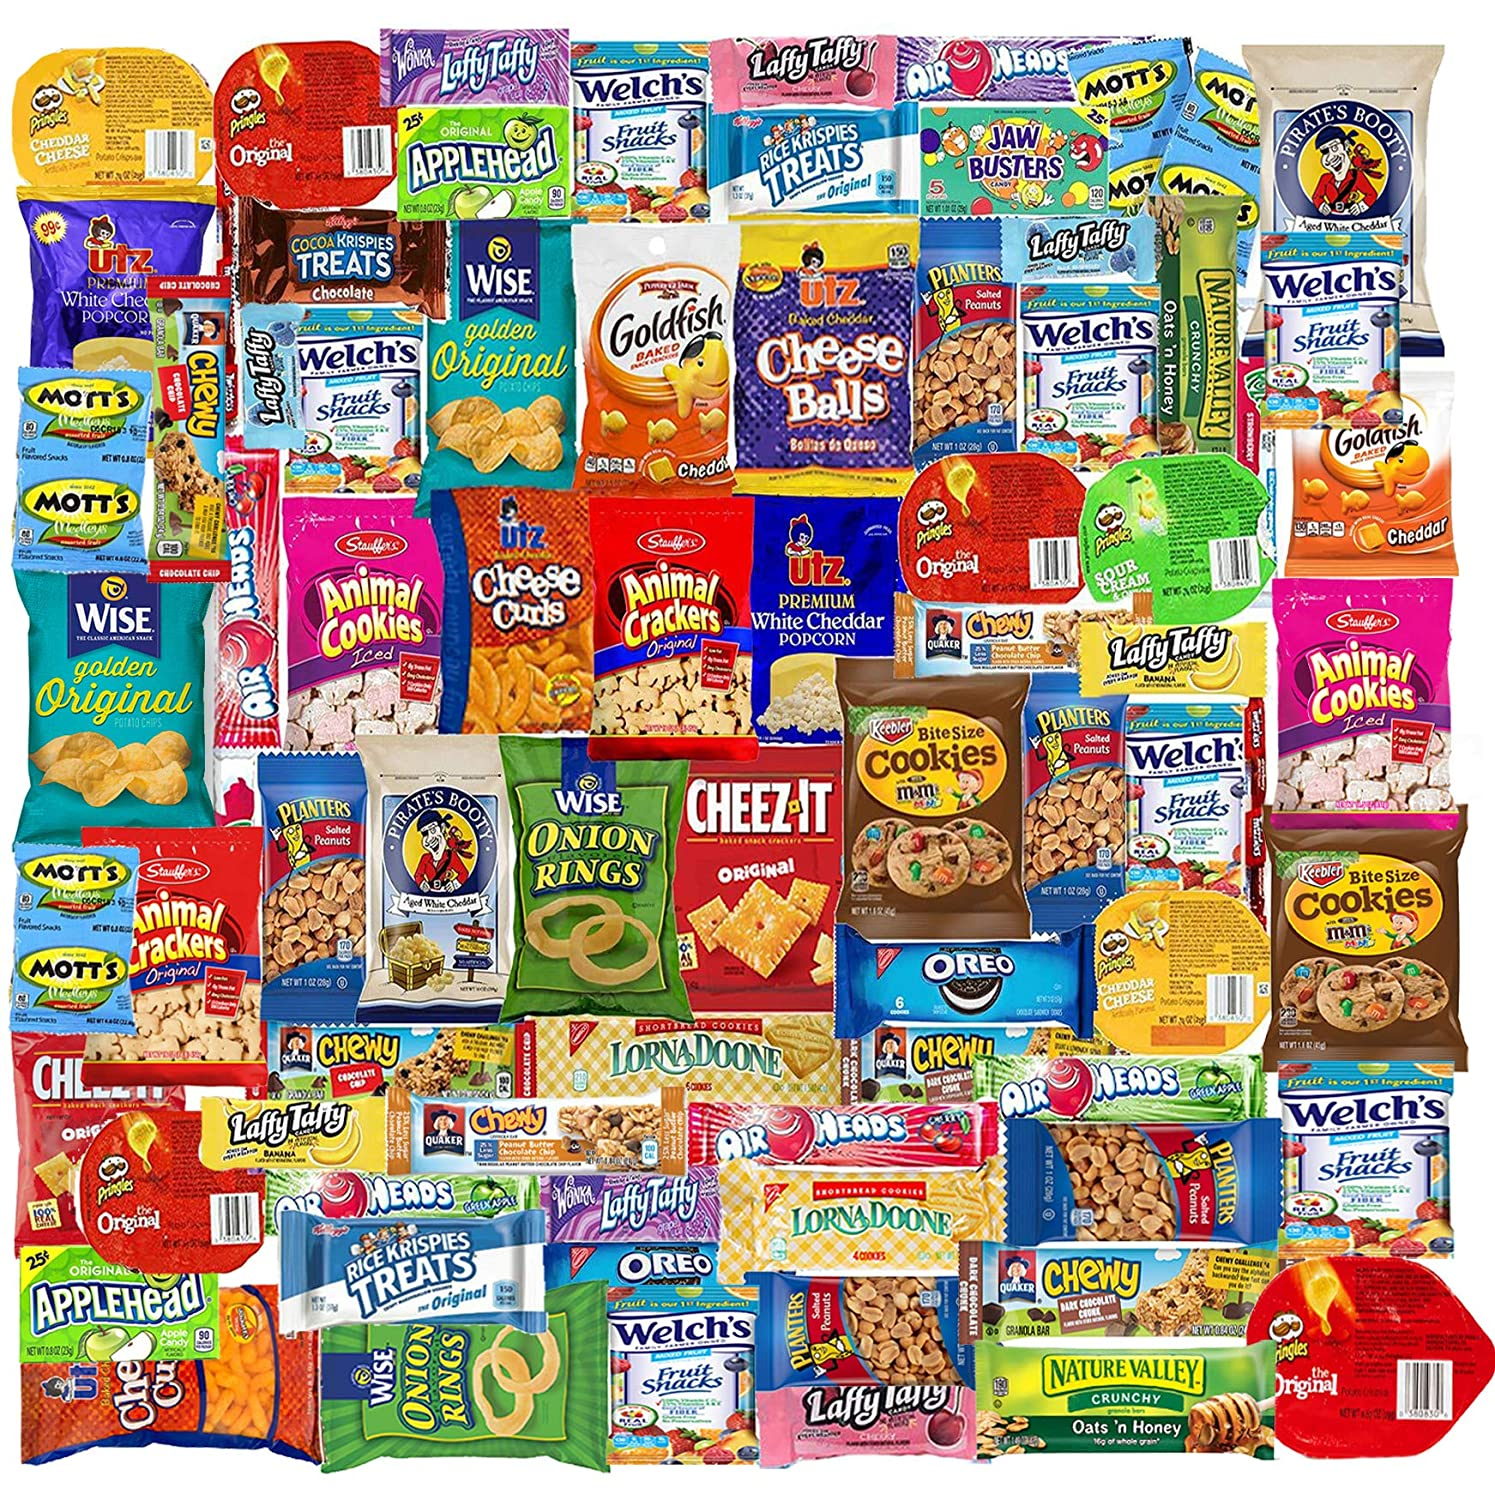 Blue Ribbon Care Package 90 Count Ultimate Sampler Mixed Bars, Cookies, Chips, Candy Snacks Box for Office, Meetings, Schools,Friends & Family, Military,College, Halloween, Fun Variety Pack